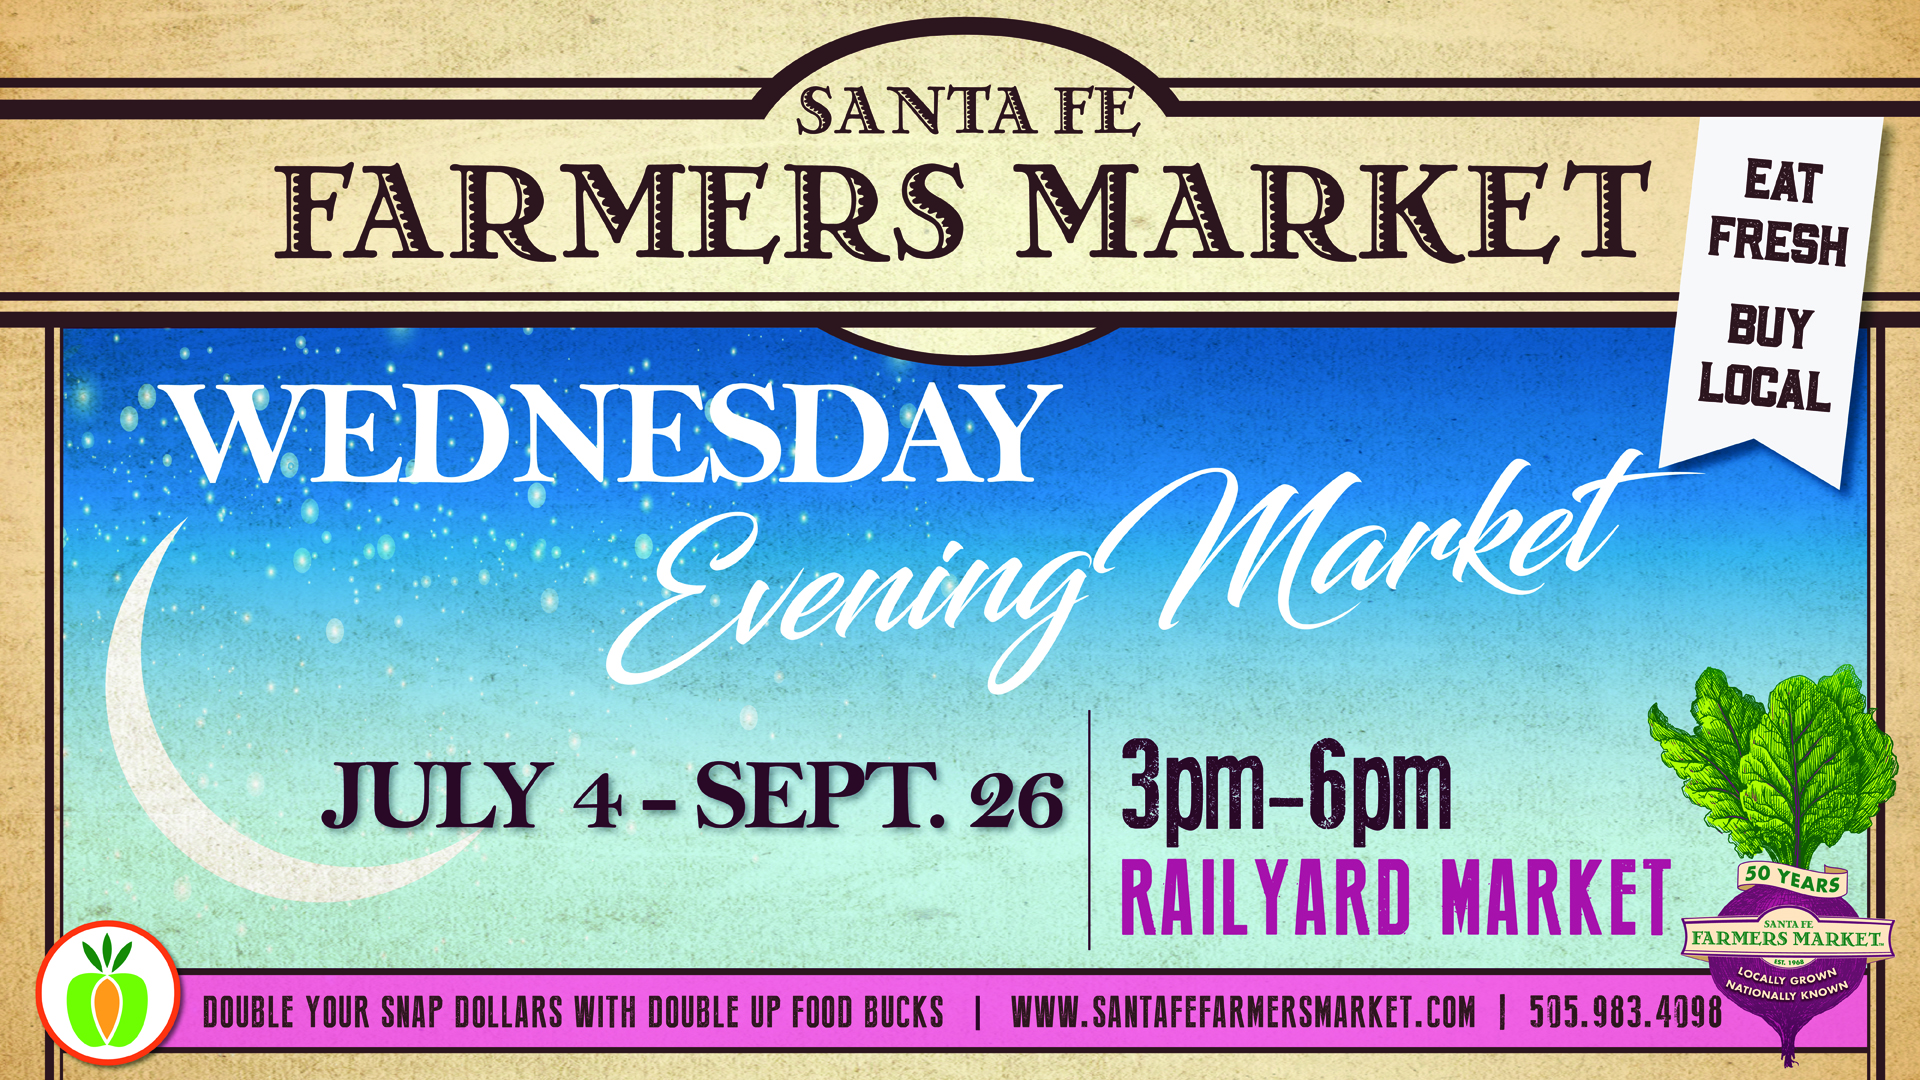 WEDNESDAY EVENING FARMERS MARKET @ Santa Fe Farmers Market | Santa Fe | New Mexico | United States